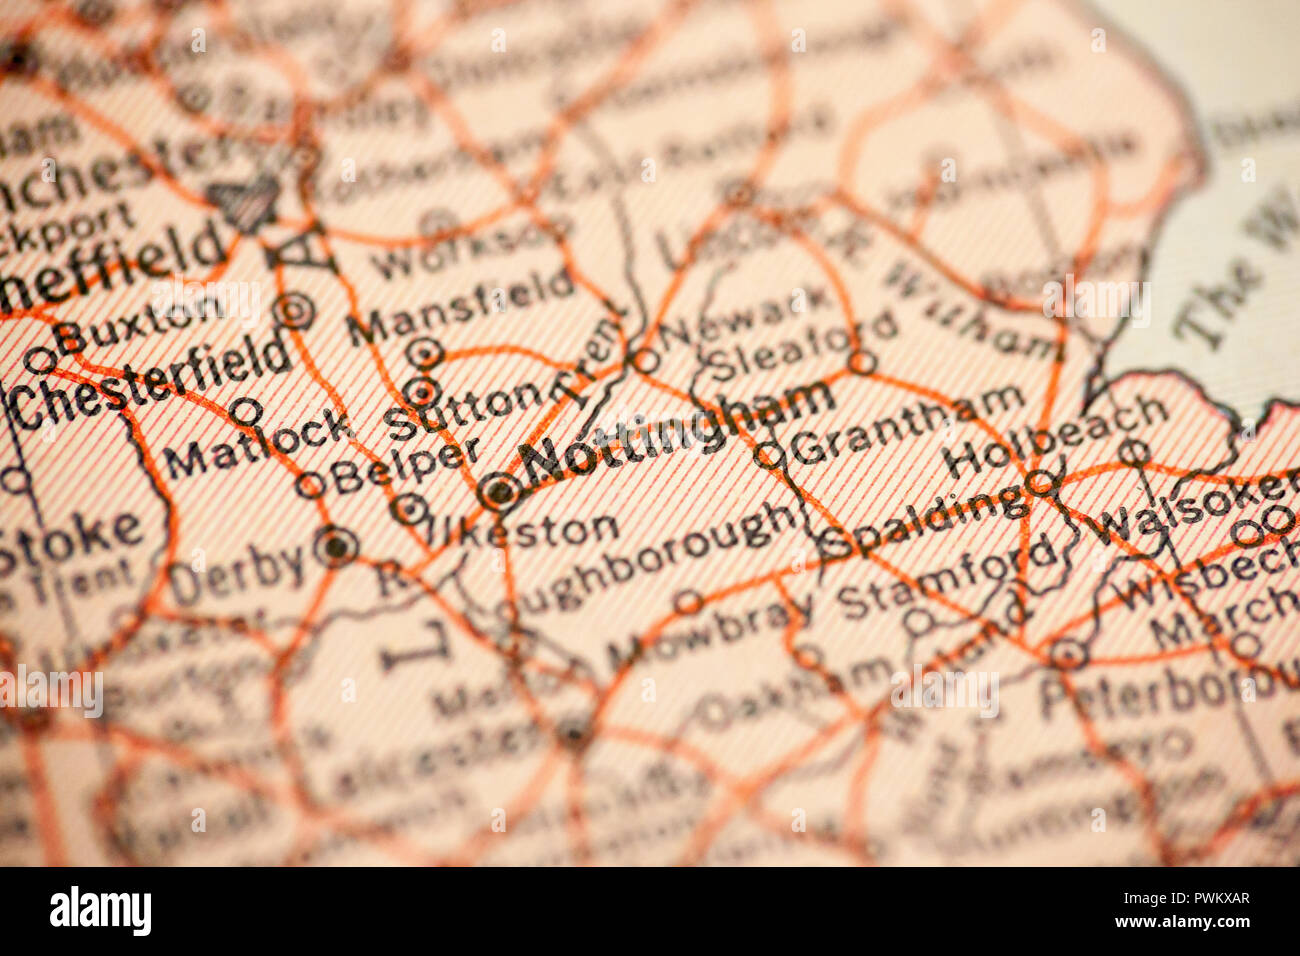 Nottingham England Is The Point Of Focus On A Vintage Map Stock